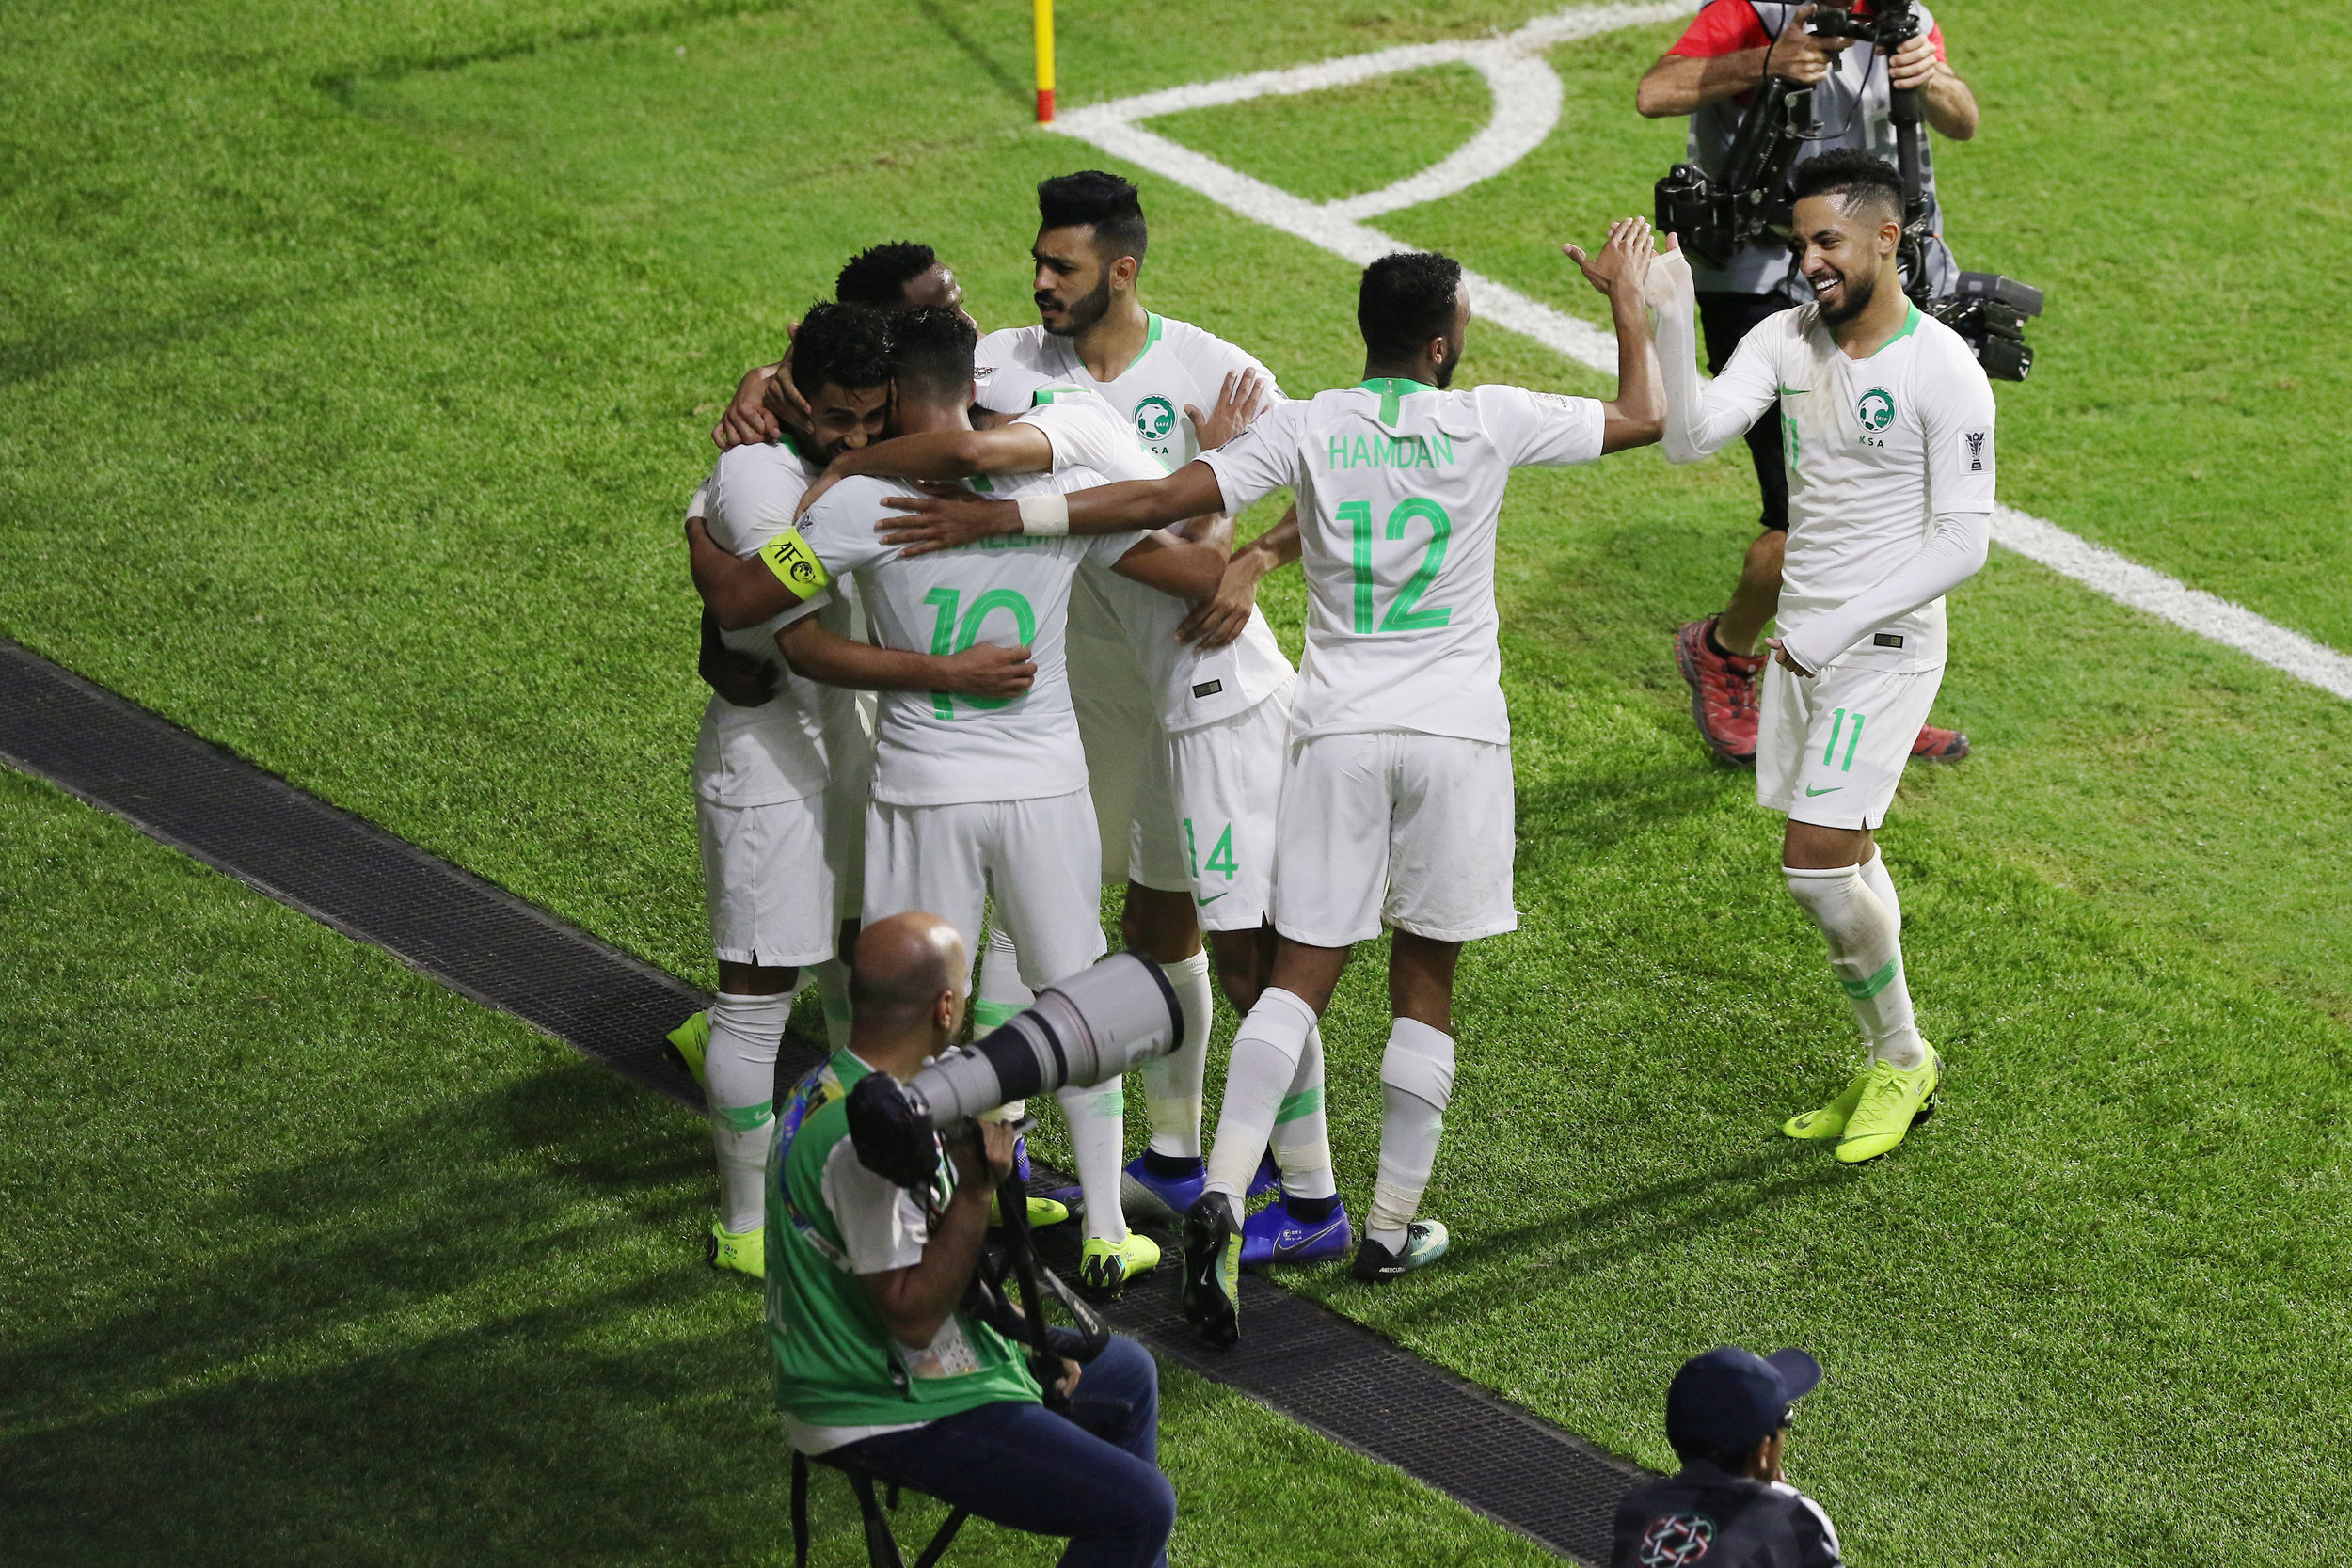 Saudi Arabia, would they prefer finishing first or second? (Asian Football Confederation (AFC))